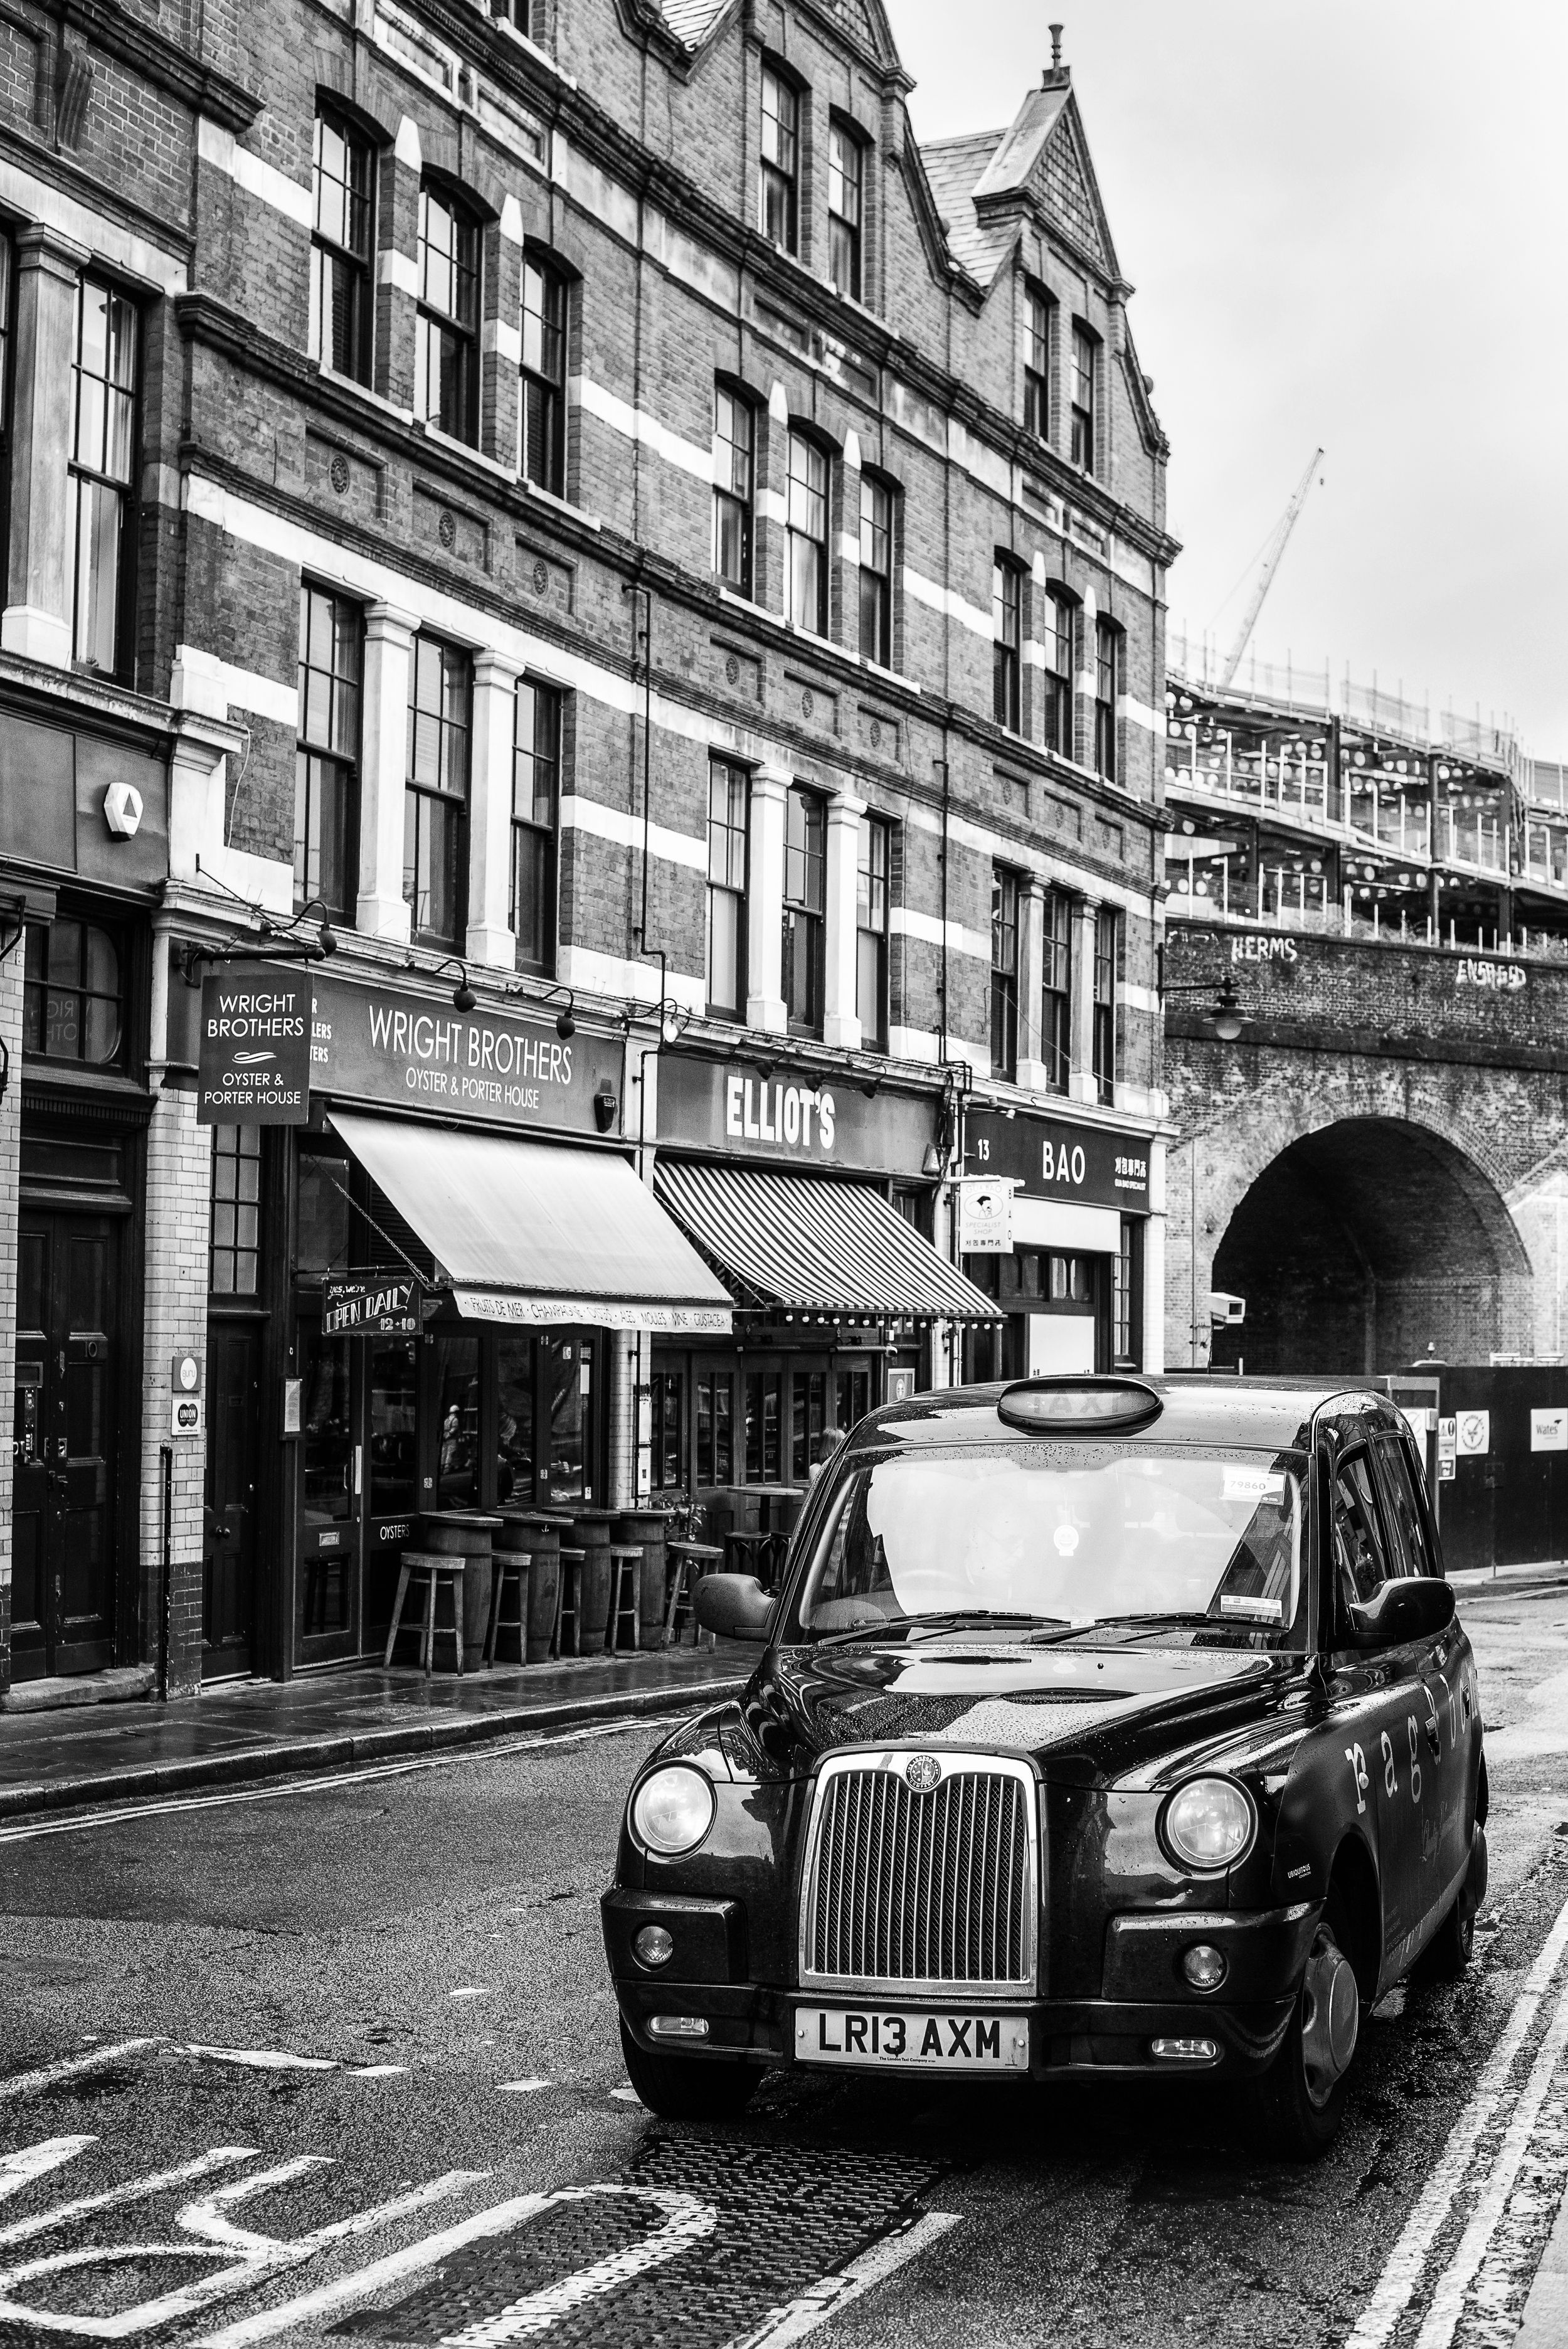 black and white street image of a London taxi in Boroughs Market area